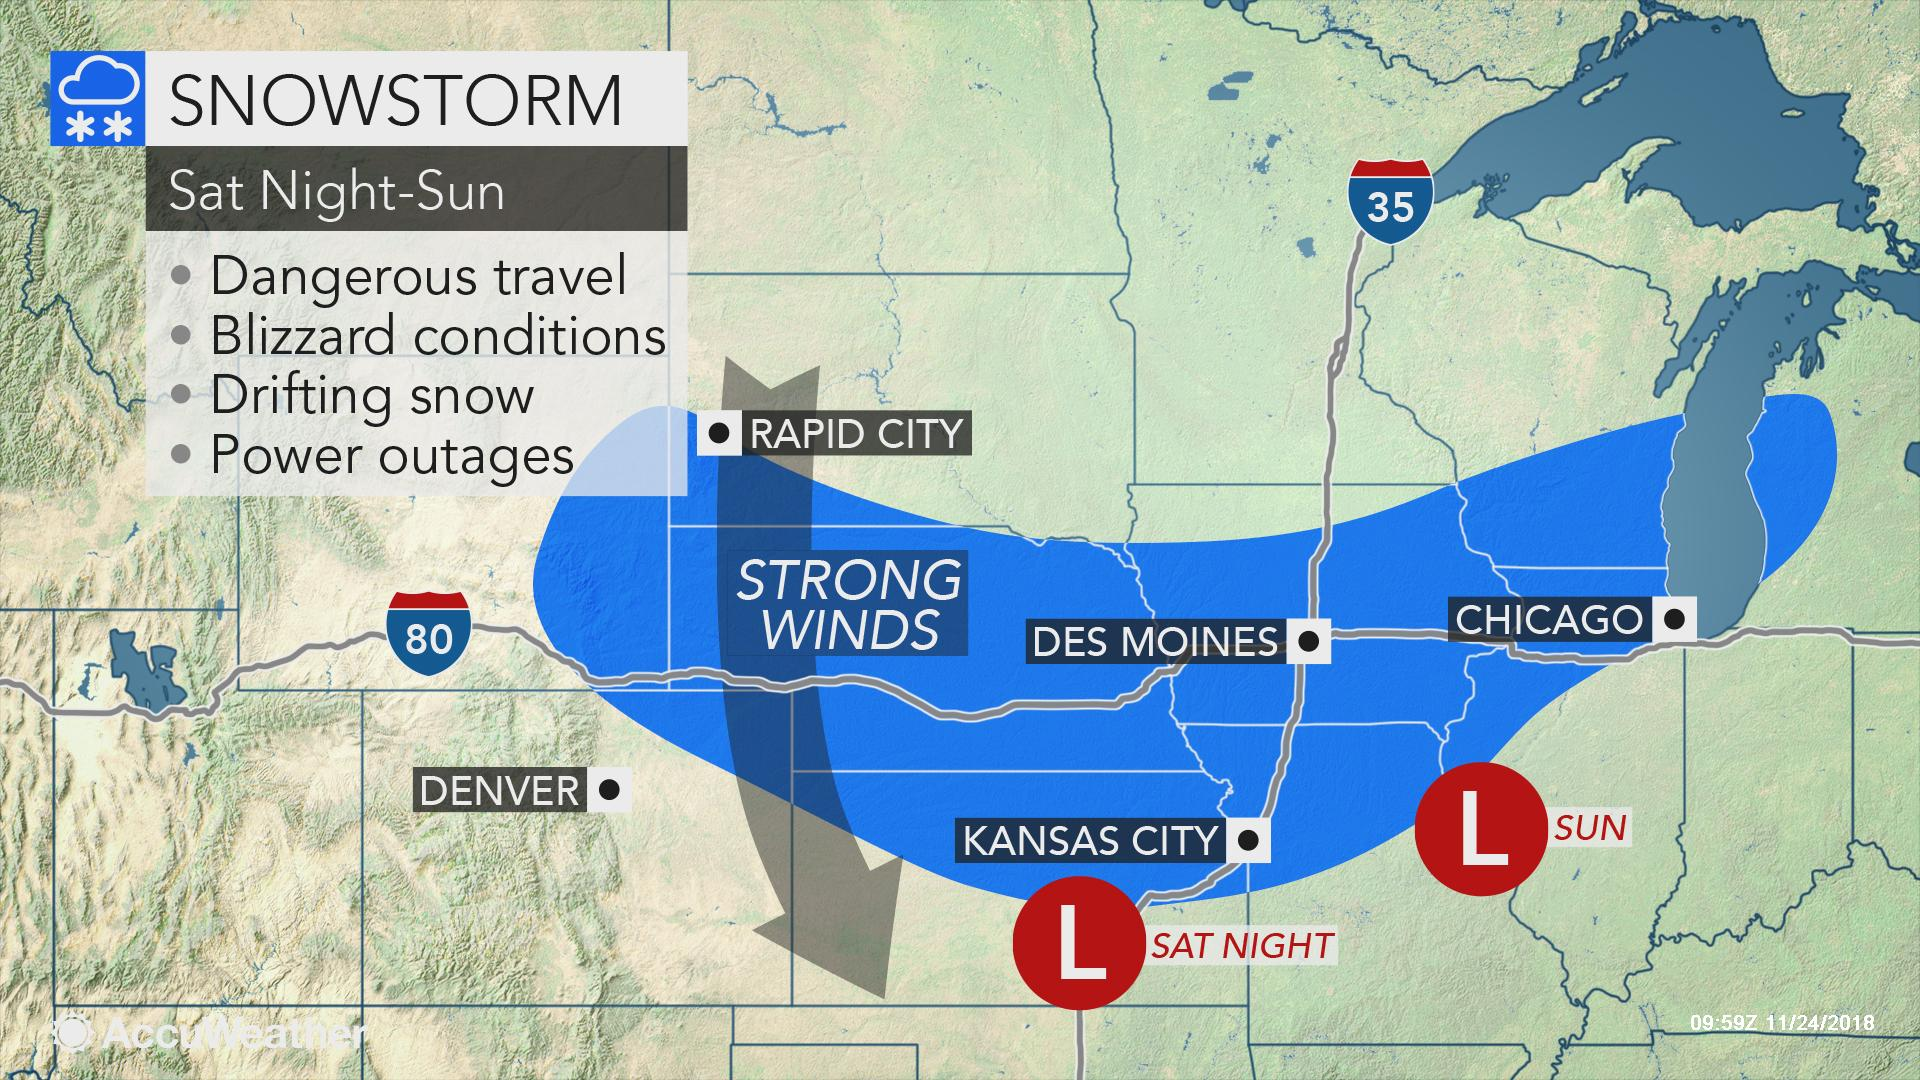 Snowstorm to unleash blizzard conditions across central US